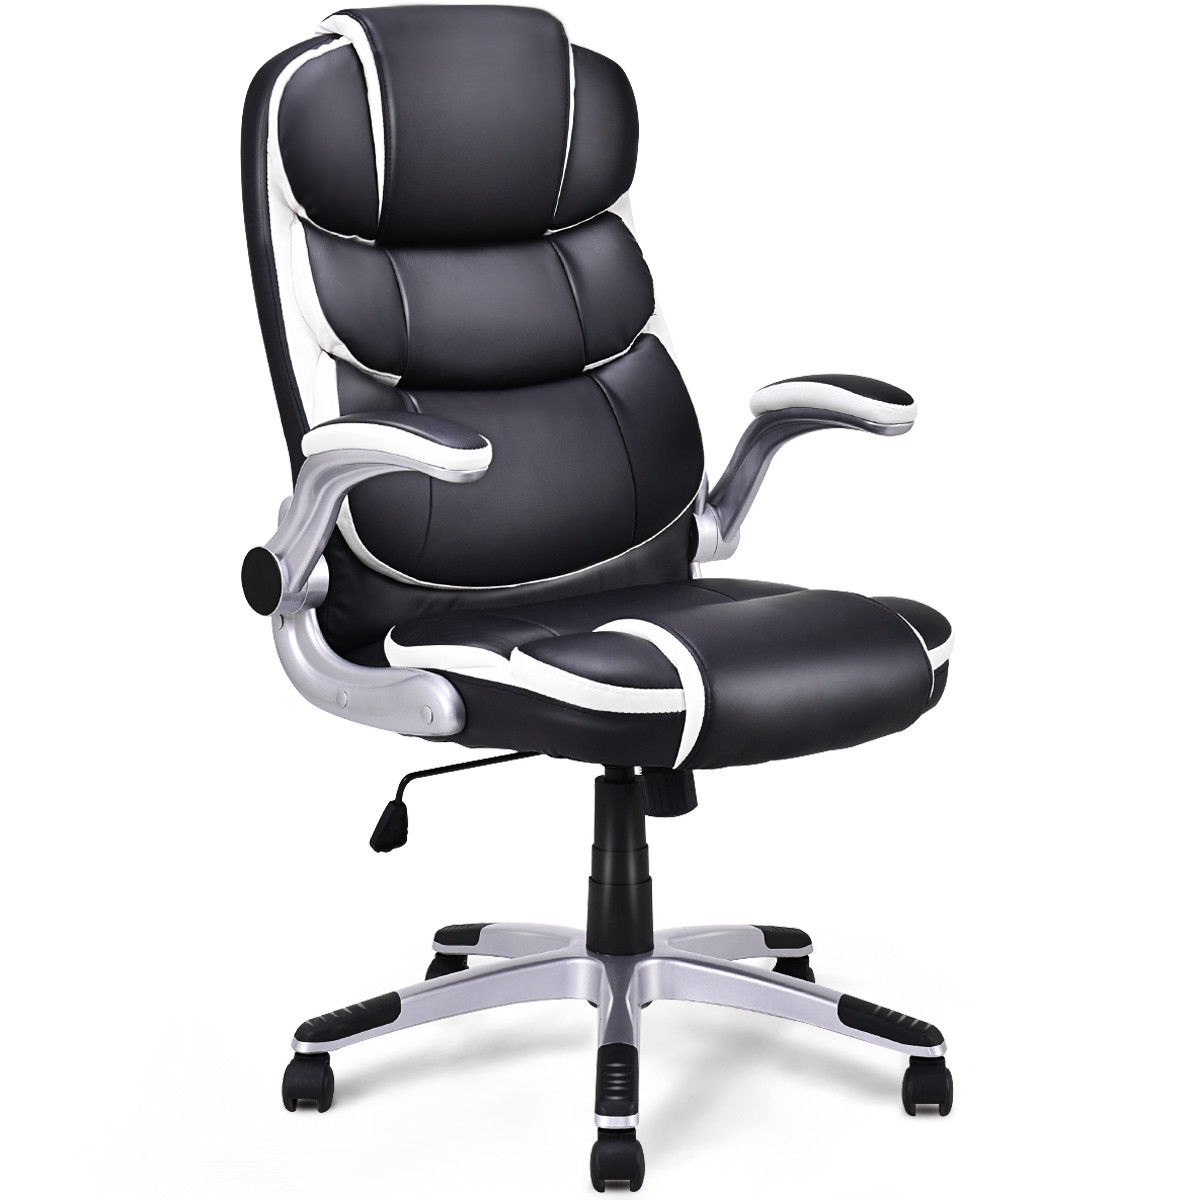 Pu Leather Office Chair Revolving Price In Ludhiana Giantex High Back Executive Modern